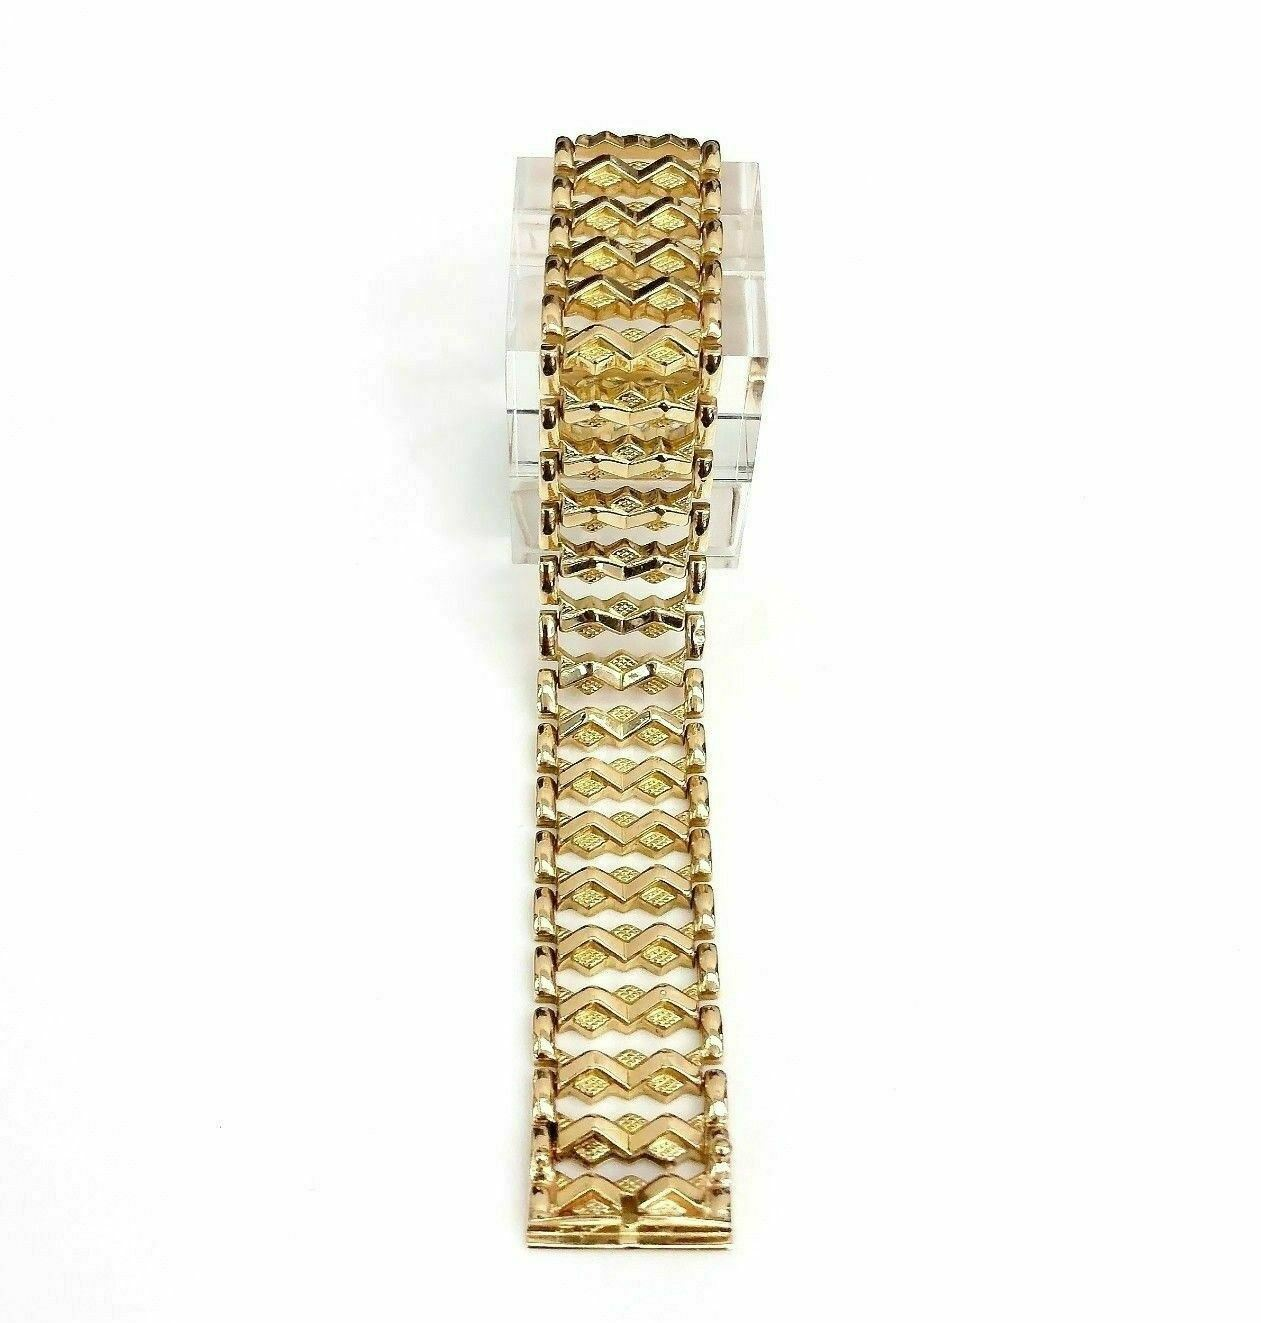 18K Yellow Gold Vintage Bracelet 0.70 Inch Wide 7.50 Inches